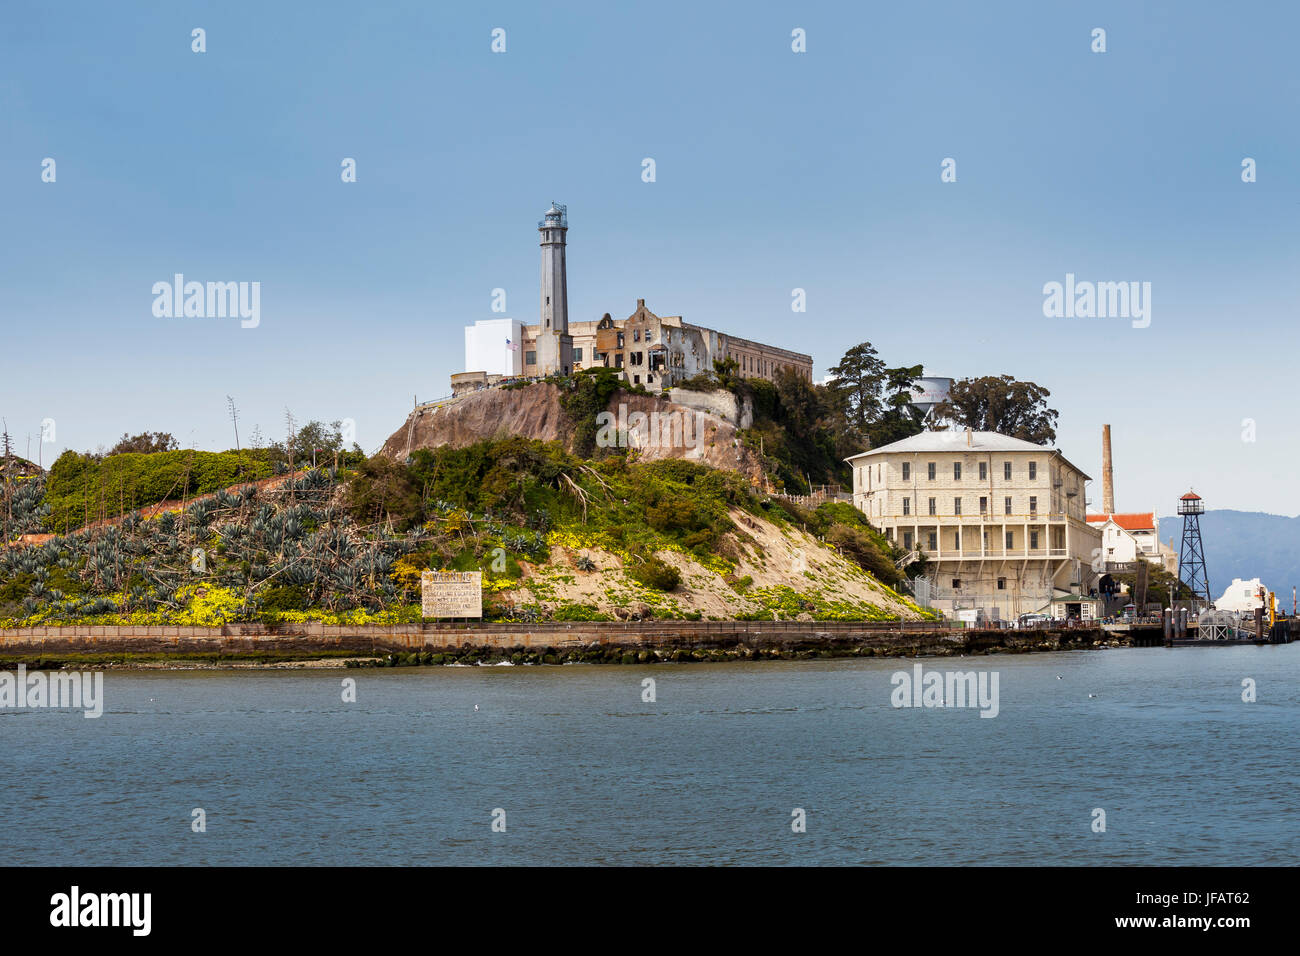 Alcatraz penitentiary, San Francisco, California, USA - Stock Image